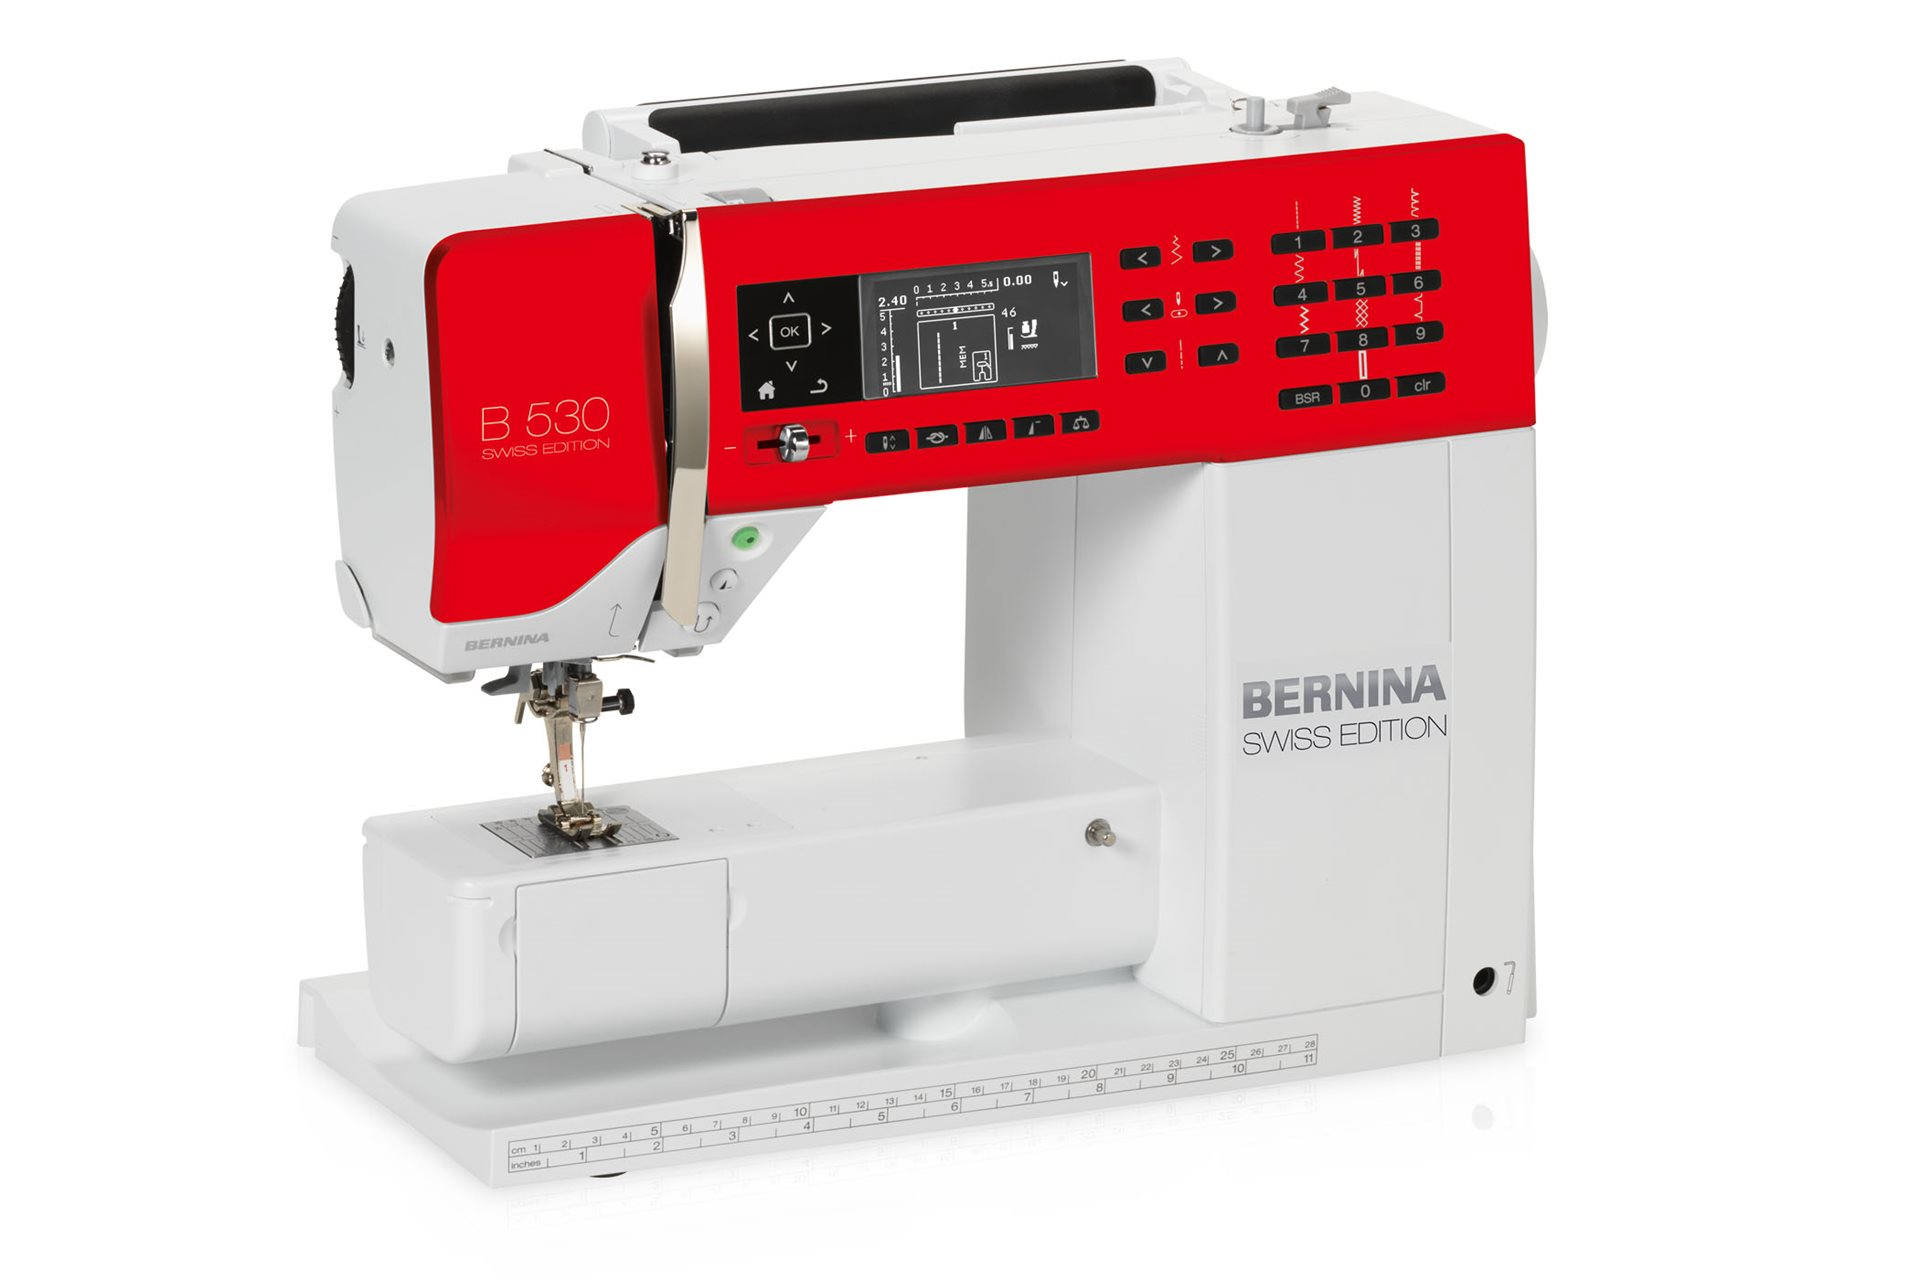 BERNINA 530 Swiss Edition